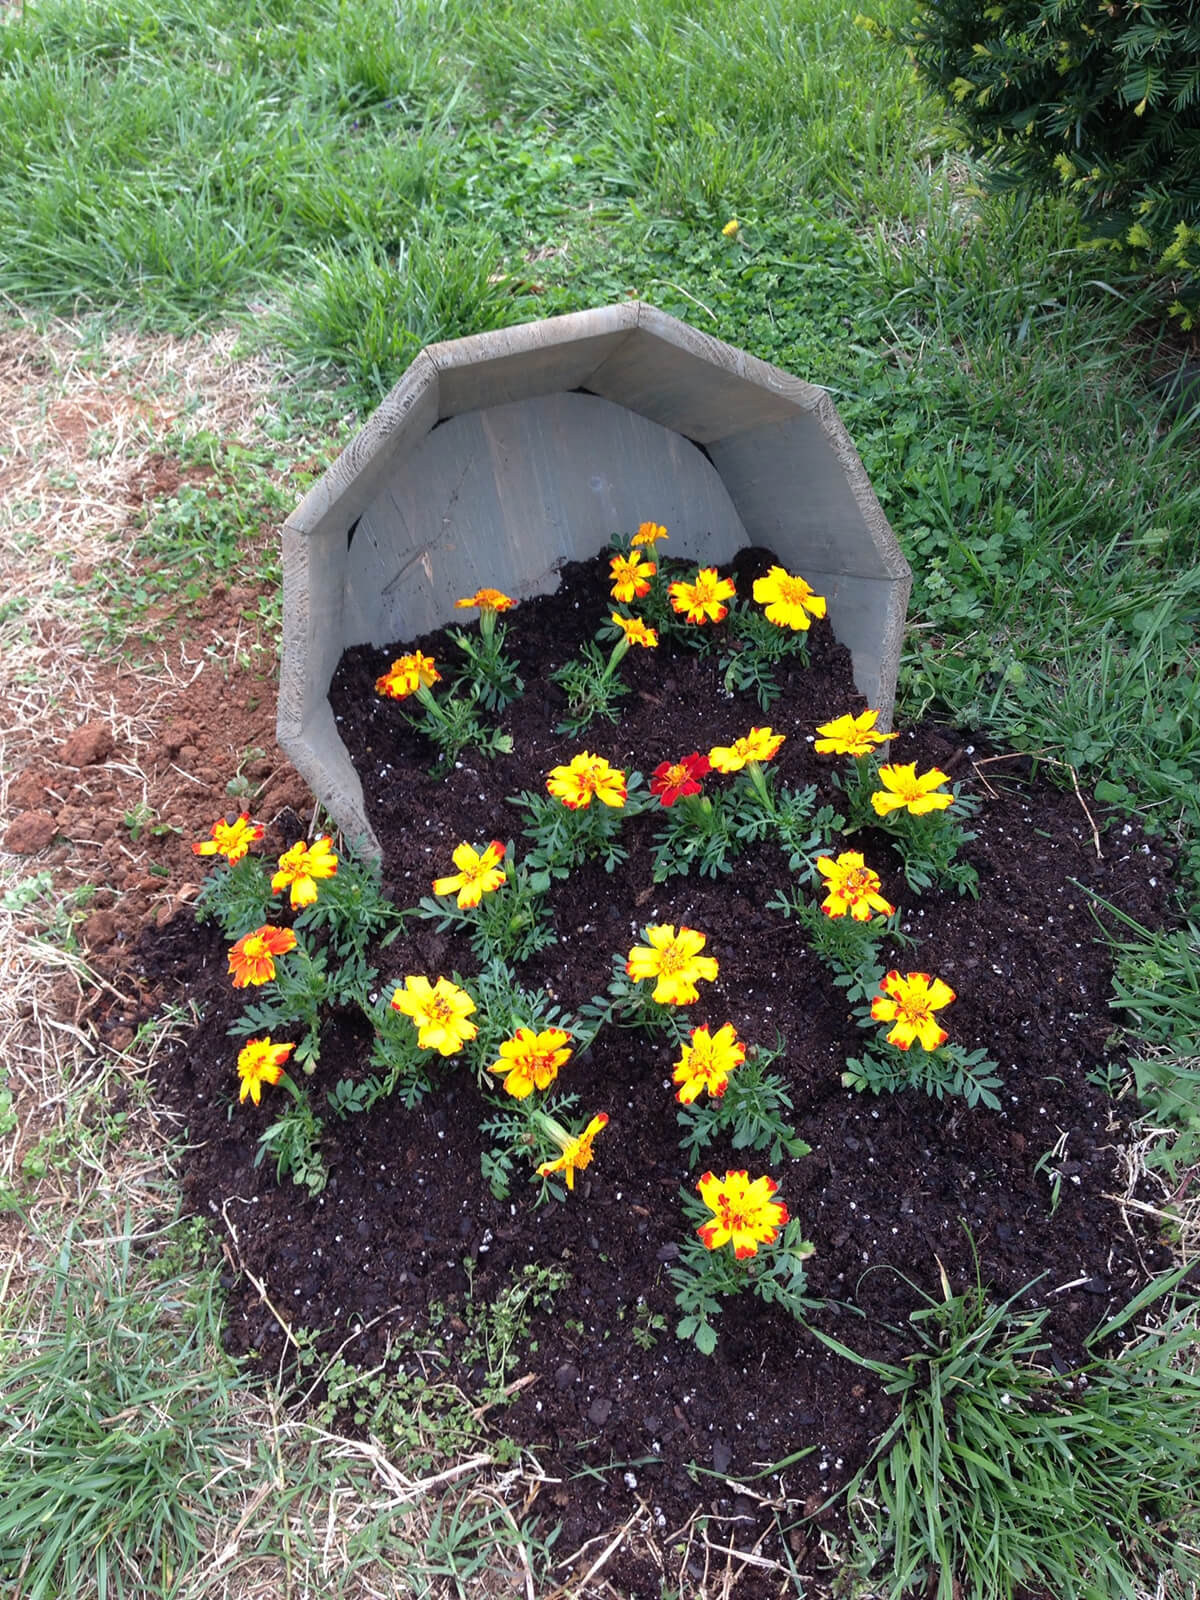 Marigolds Popping out of their Planter